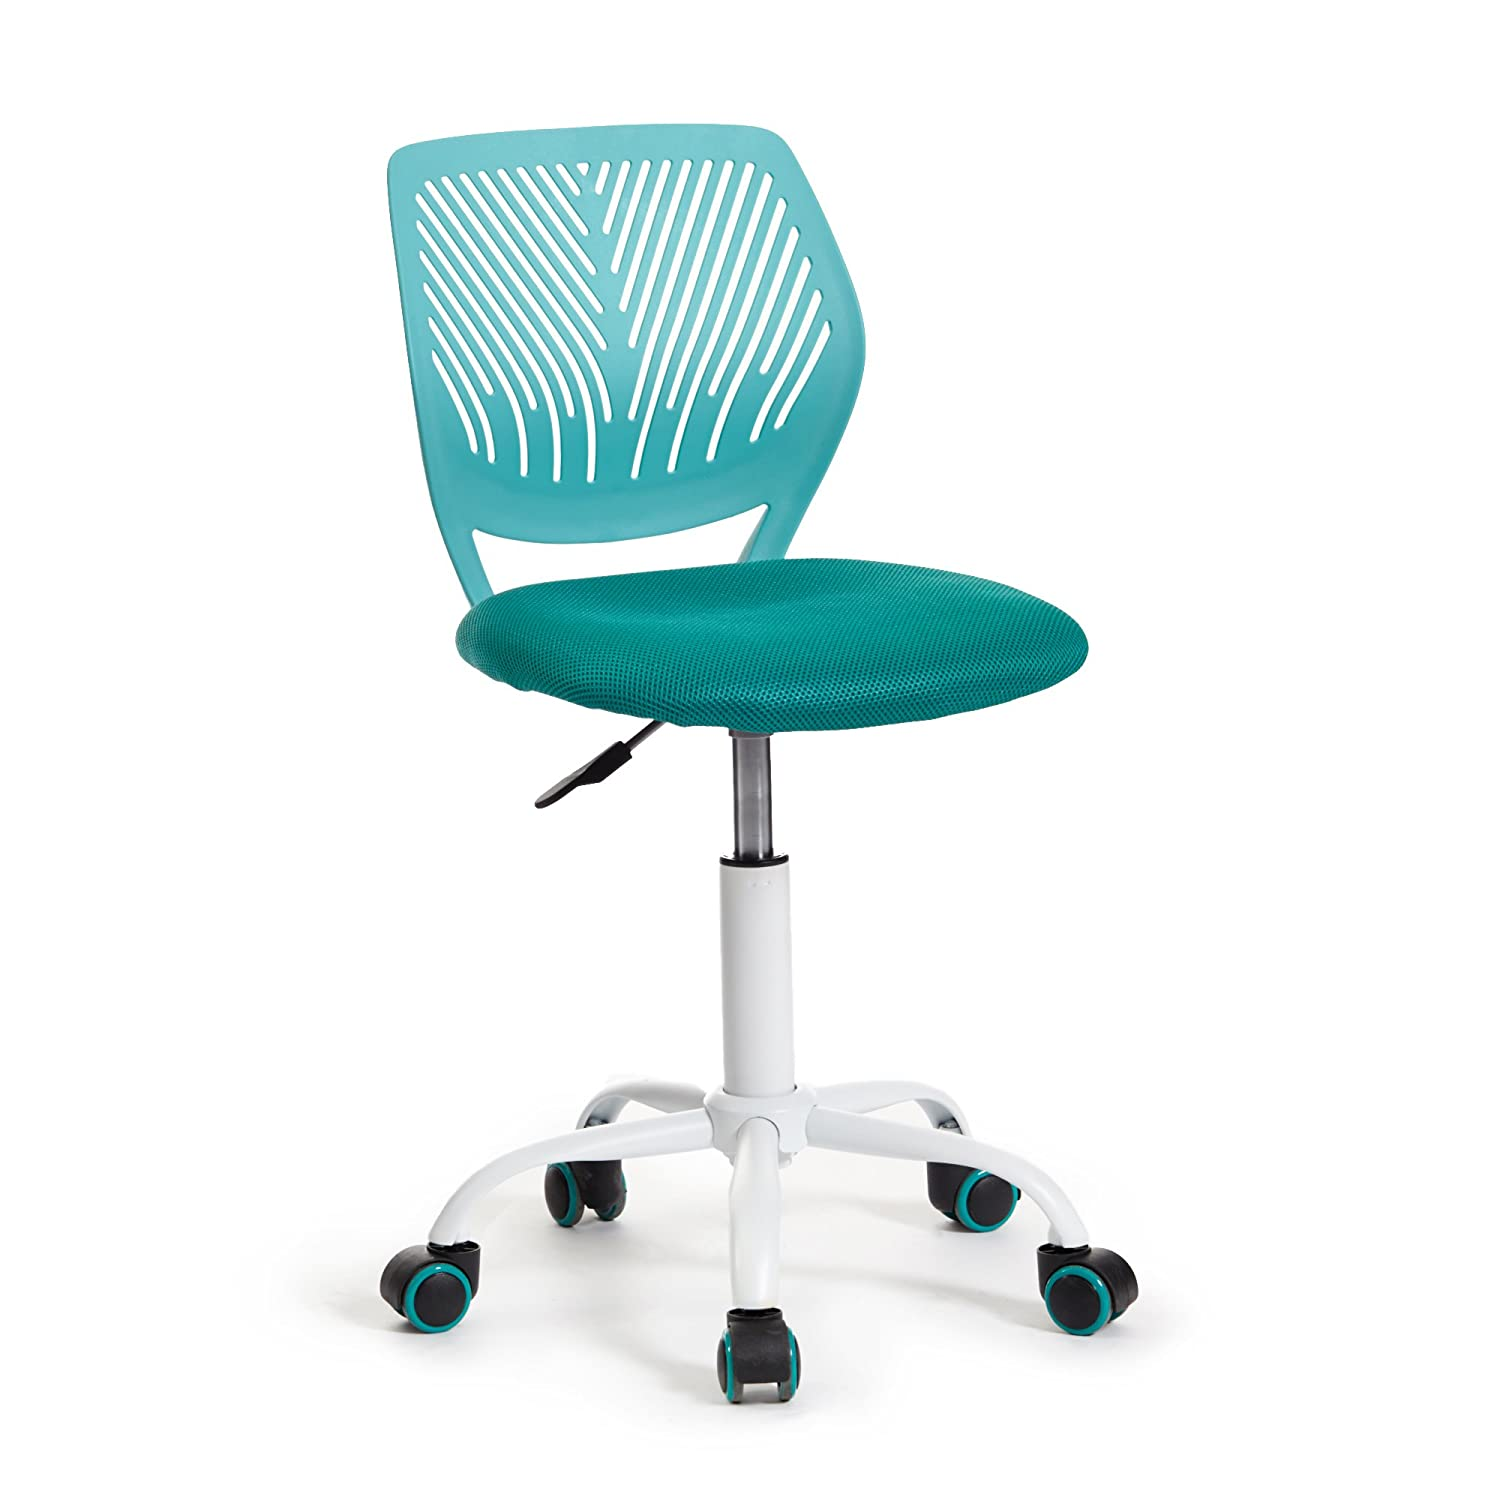 Ordinaire Amazon.com: Green Forest Office Task Desk Chair Adjustable Mid Back Home  Children Study Chair, Turquoise: Kitchen U0026 Dining